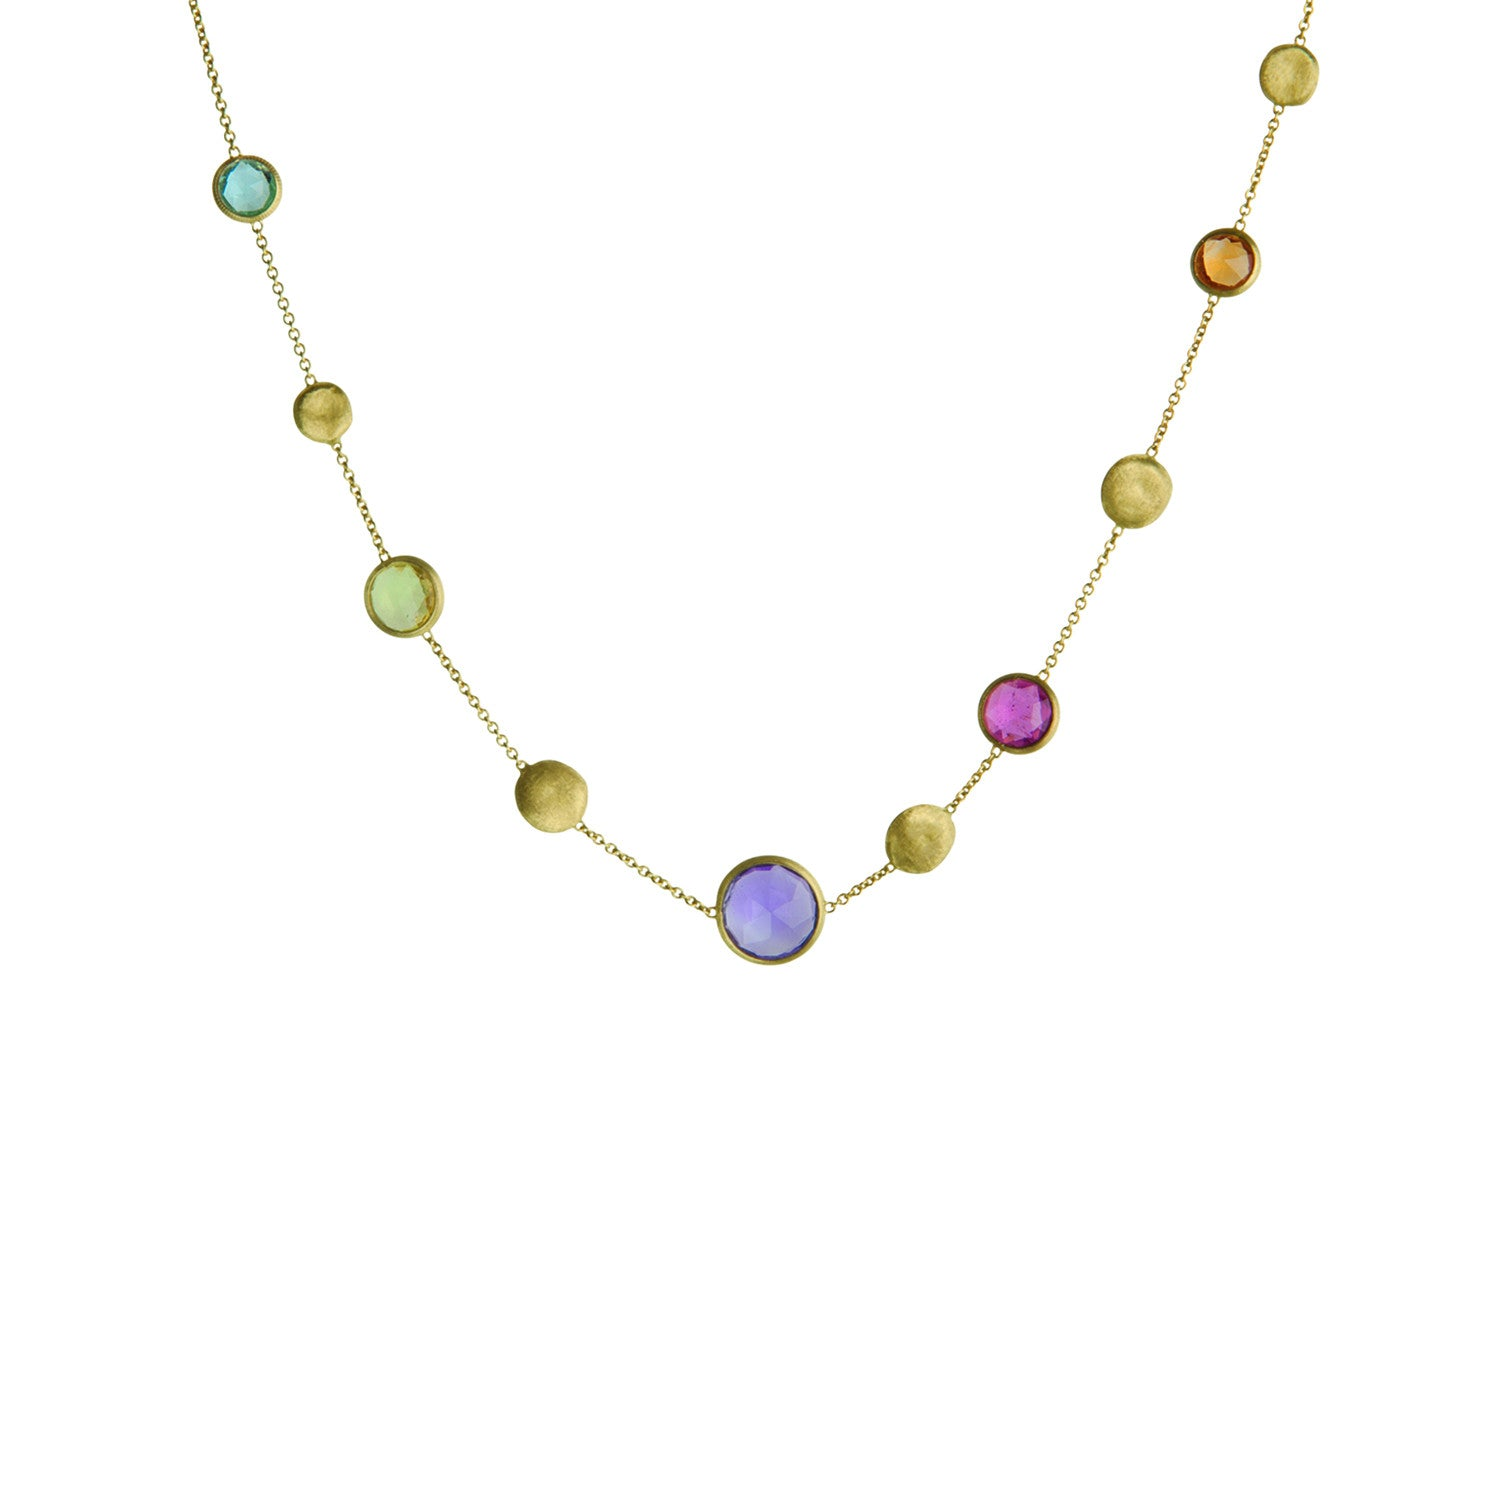 Gold-Discs-Multi-Gemstone-Necklace-Marco-Bicego-CB1243MIX01